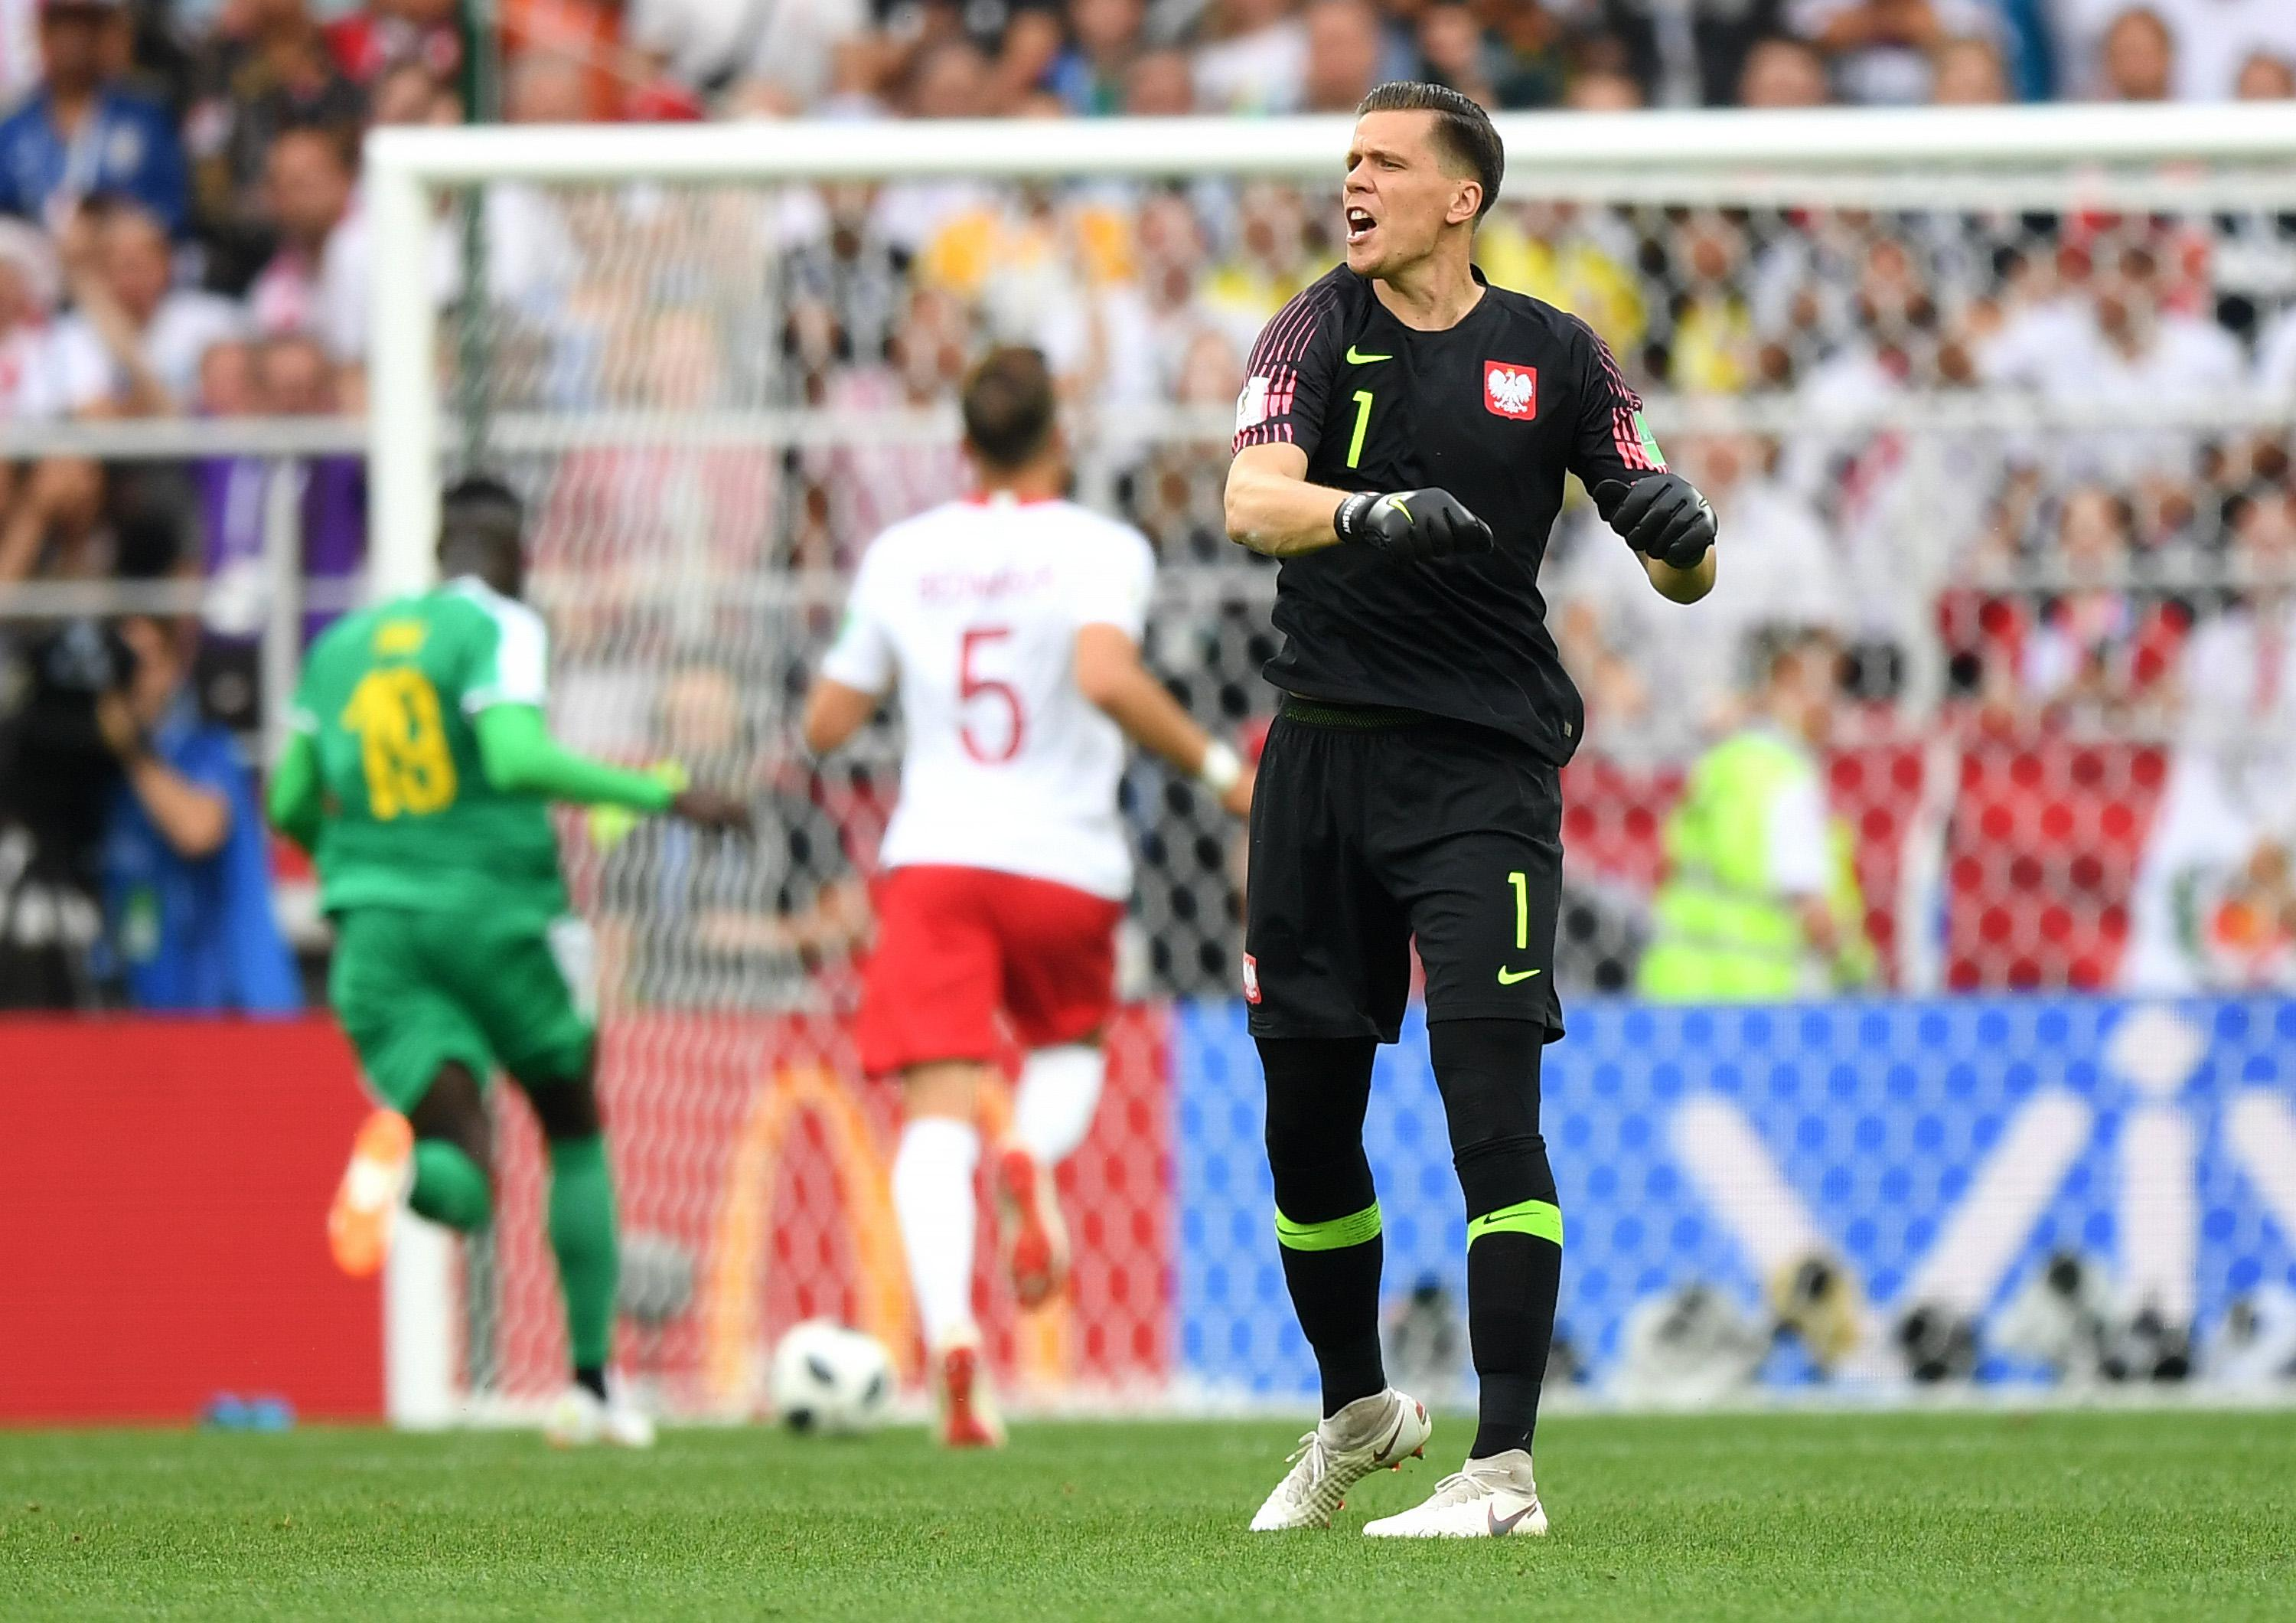 MOSCOW, RUSSIA - JUNE 19:  Wojciech Szczesny of Poland reacts after Mbaye Niang of Senegal breaks to score his team's second goal during the 2018 FIFA World Cup Russia group H match between Poland and Senegal at Spartak Stadium on June 19, 2018 in Moscow, Russia.  (Photo by Shaun Botterill/Getty Images)